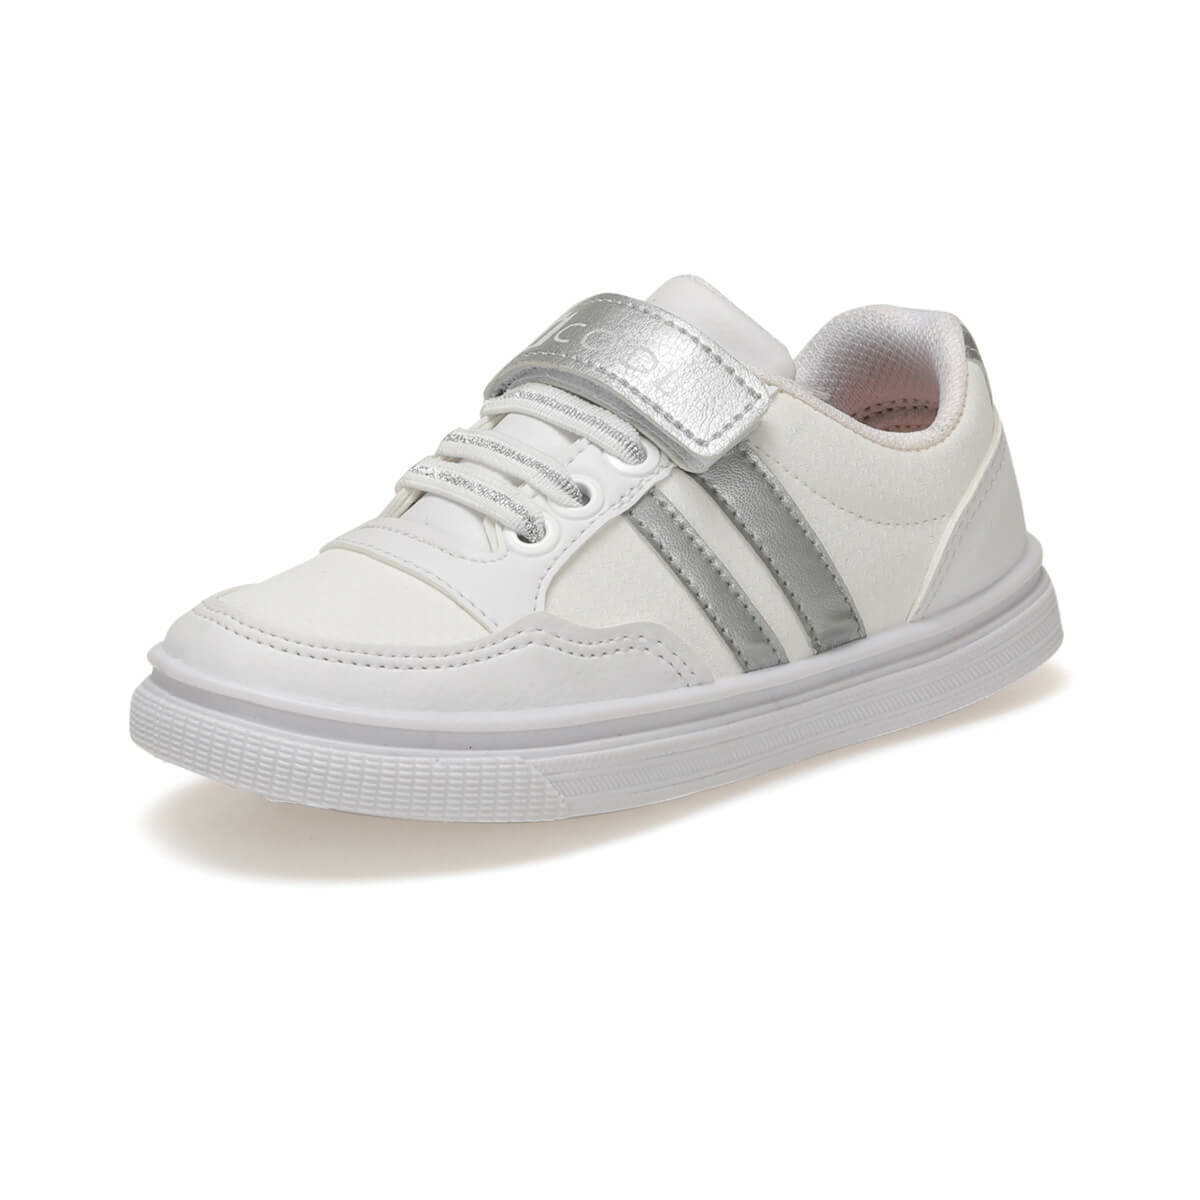 FLO TALU P White Female Child Sneaker Shoes I-Cool